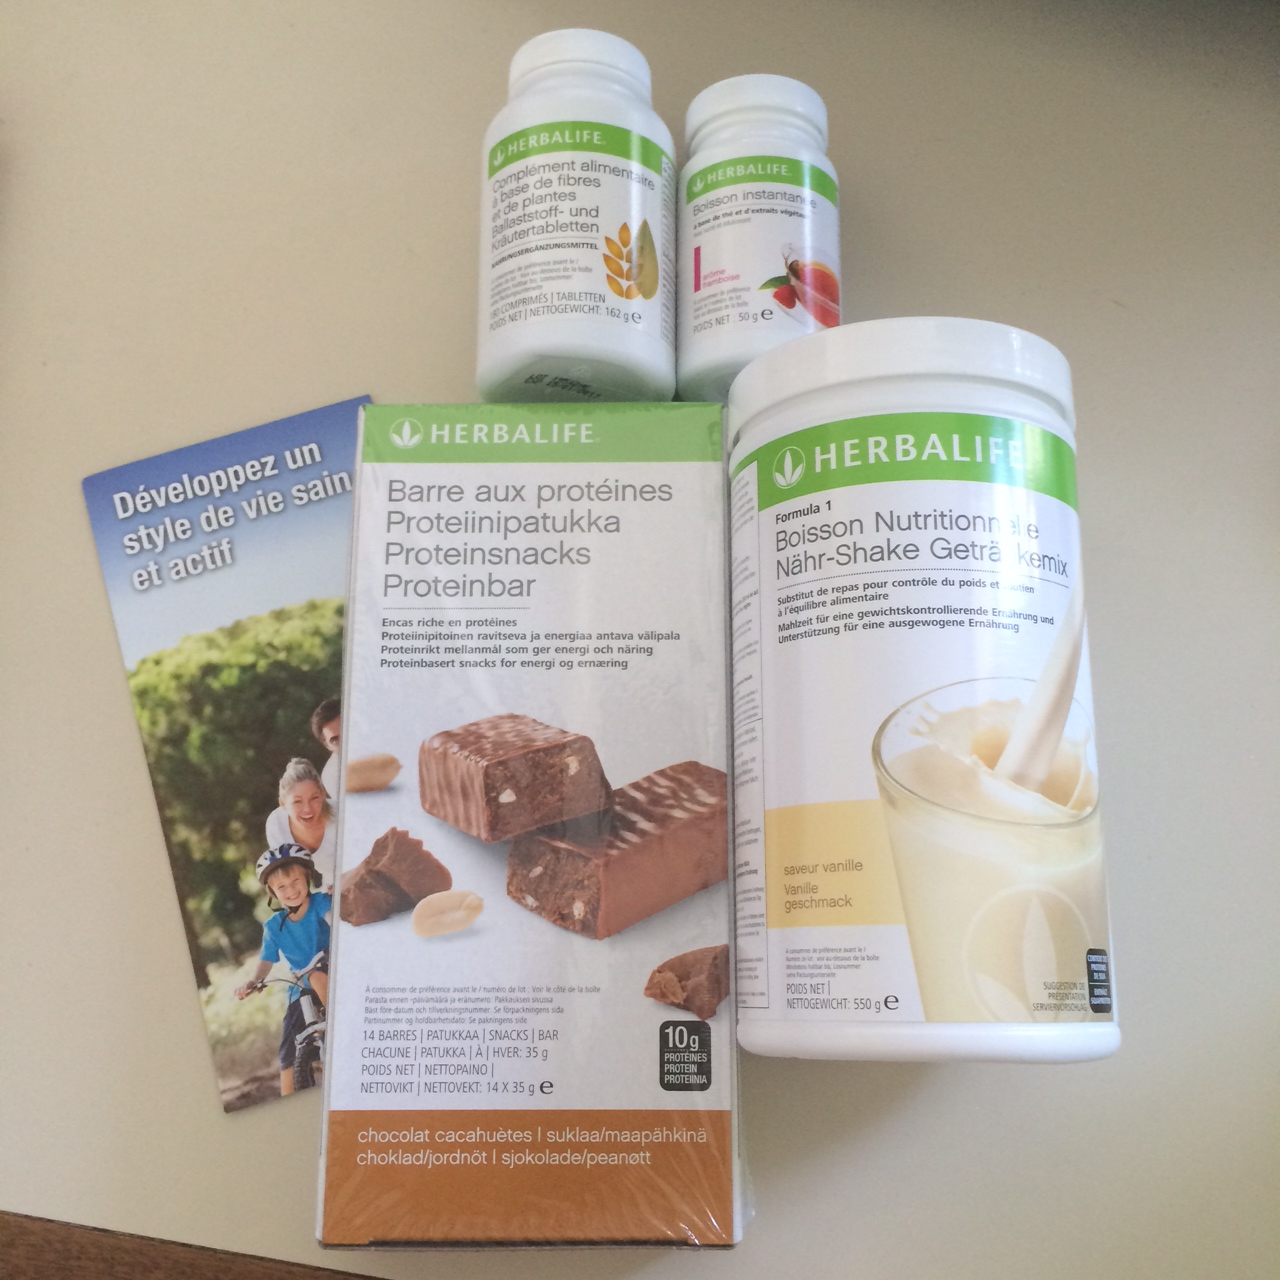 Les compléments alimentaires Herbalife